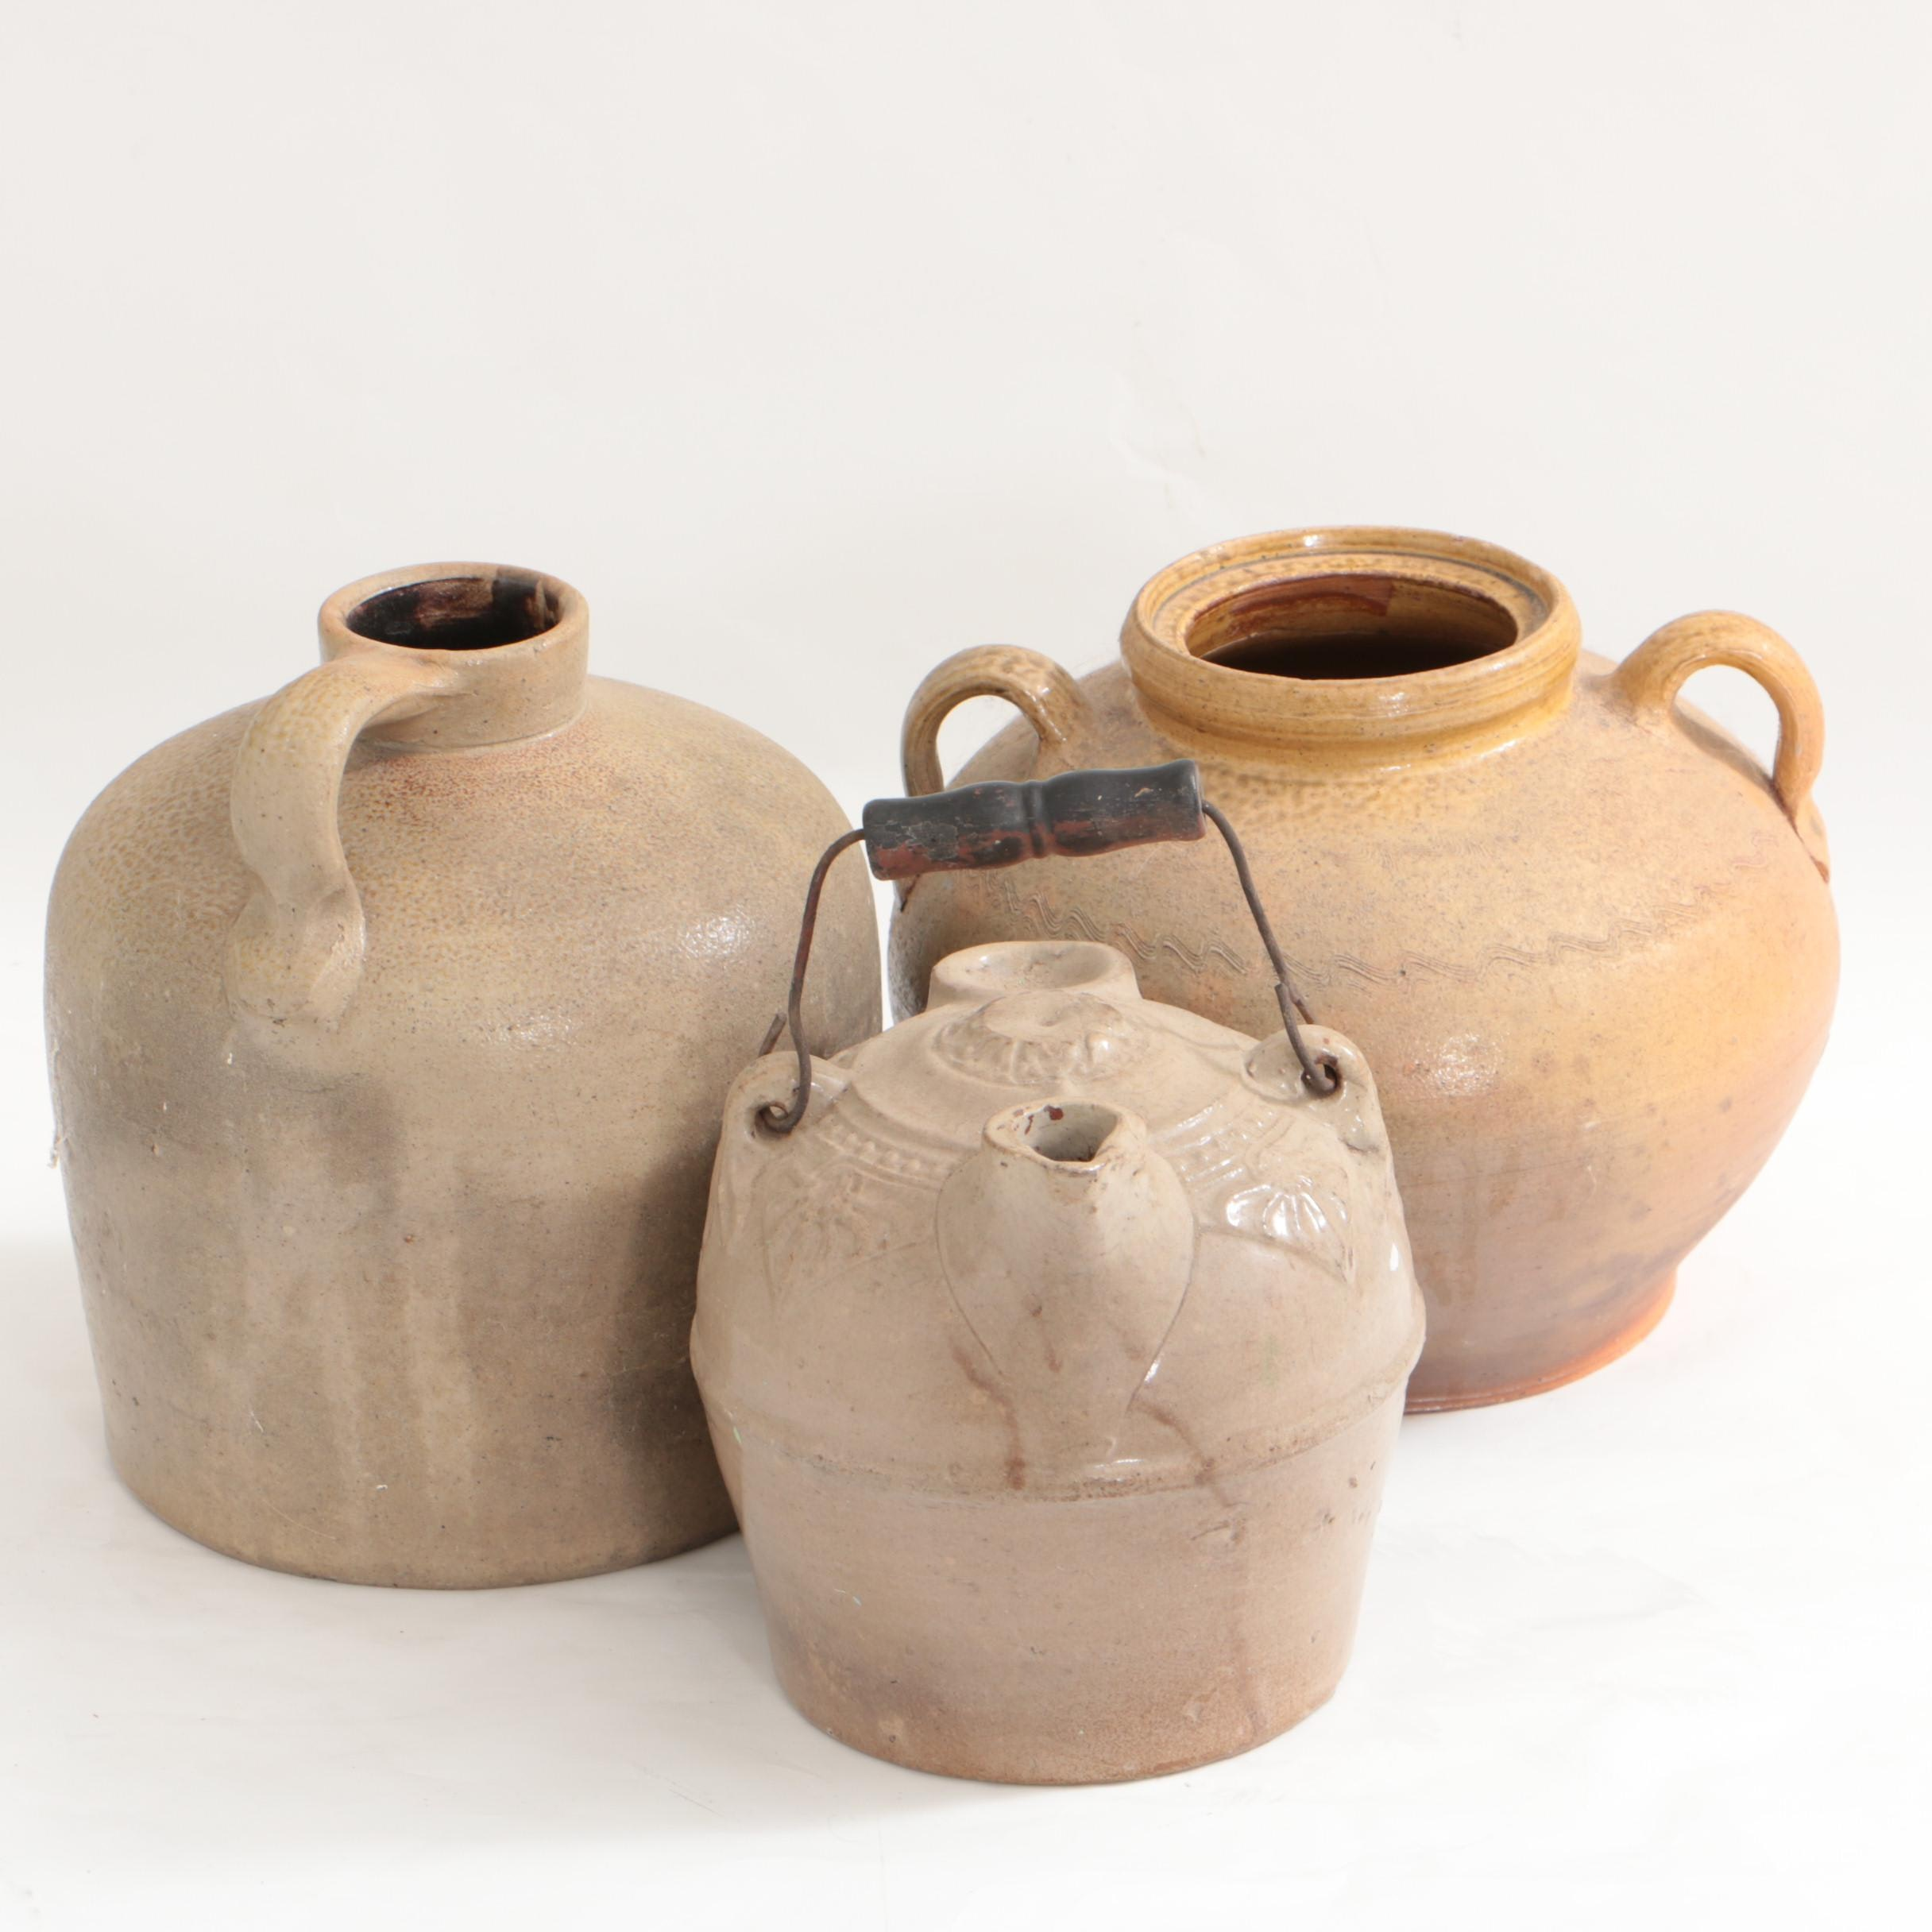 Antique F.H. Weeks Stoneware Syrup Jug, Whiskey Jug and Container